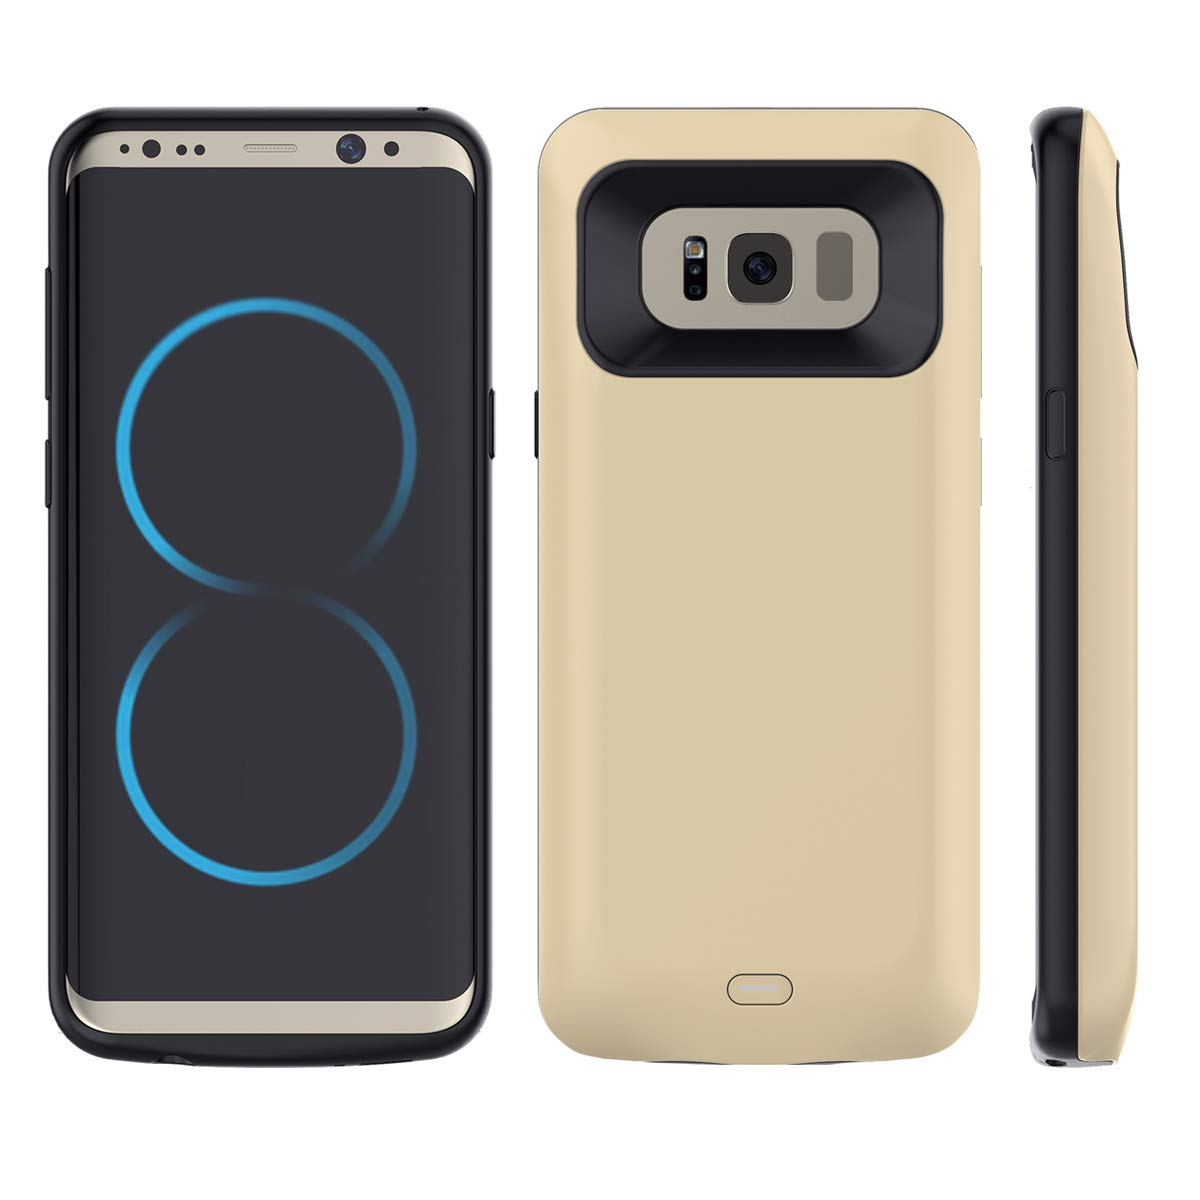 Torubia Huawei P10 Battery Rechargeable Battery Case Charger Cover, Shake Dust Dirt Proof Huawei P10 Battery - Golden